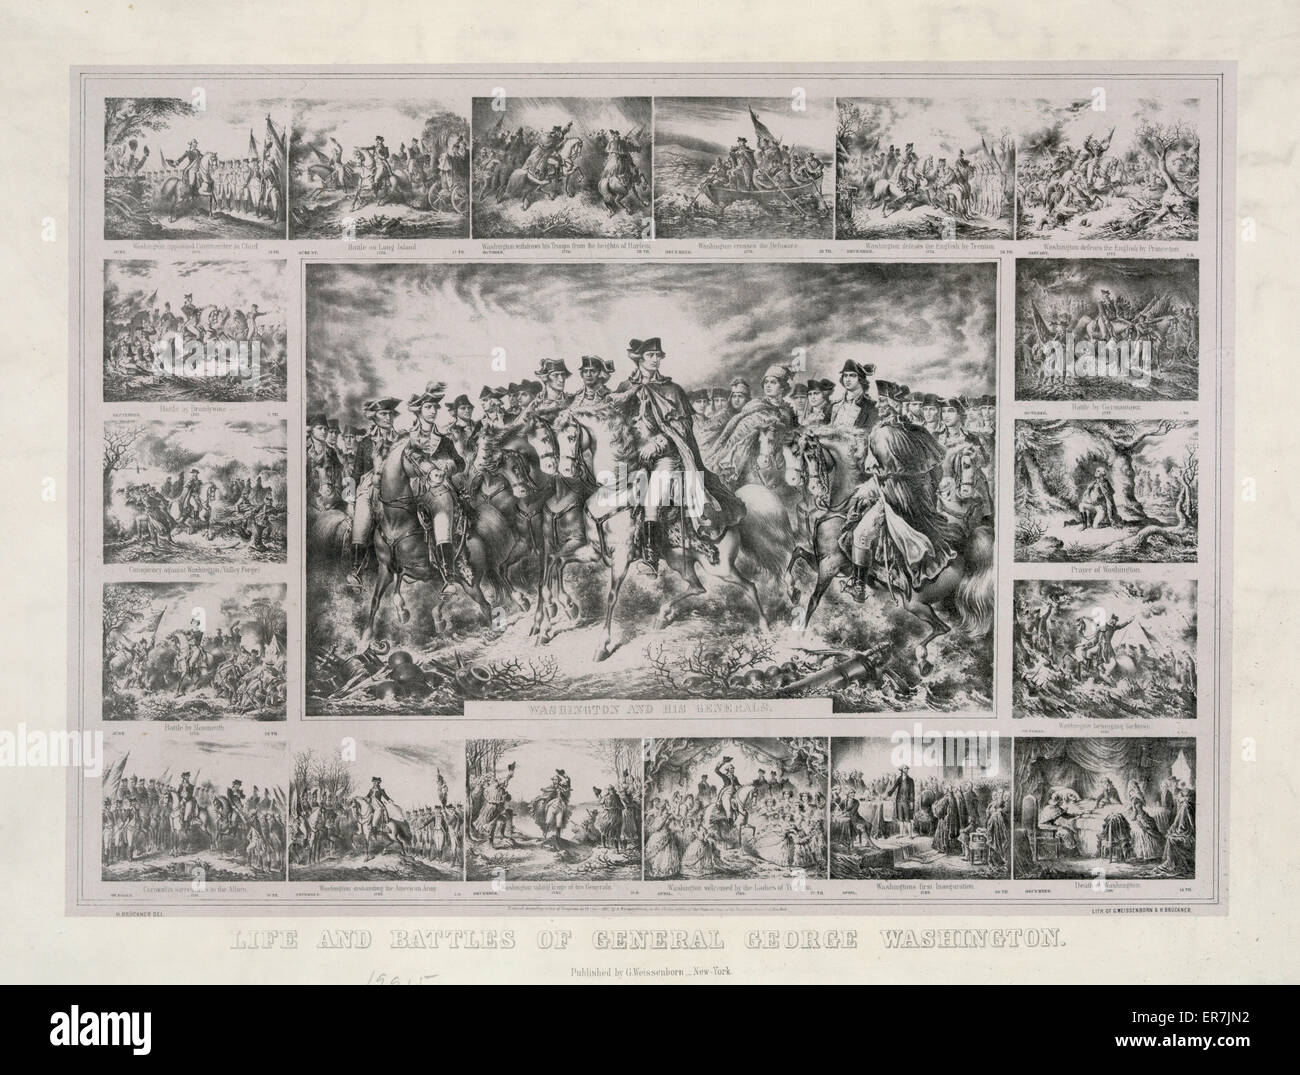 Life and battles of General George Washington. Date c1861 May 8. - Stock Image